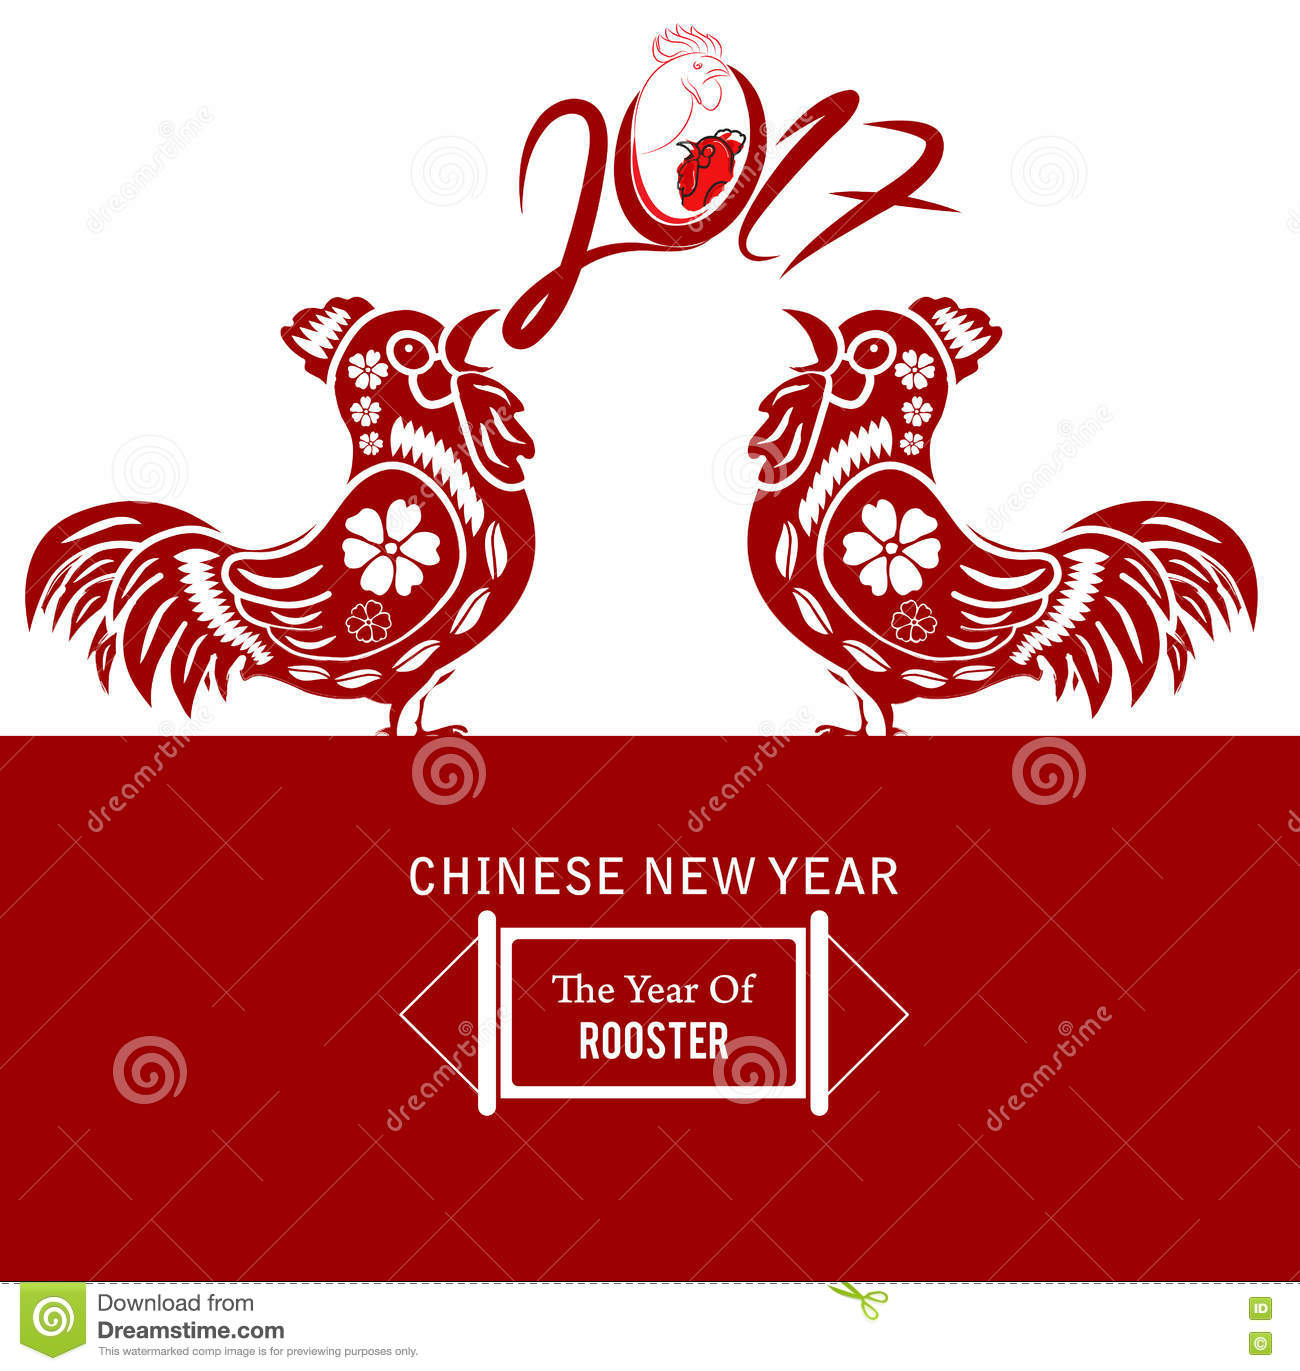 happy chinese new year holidays 2017 decorations card - Chinese New Year Holiday